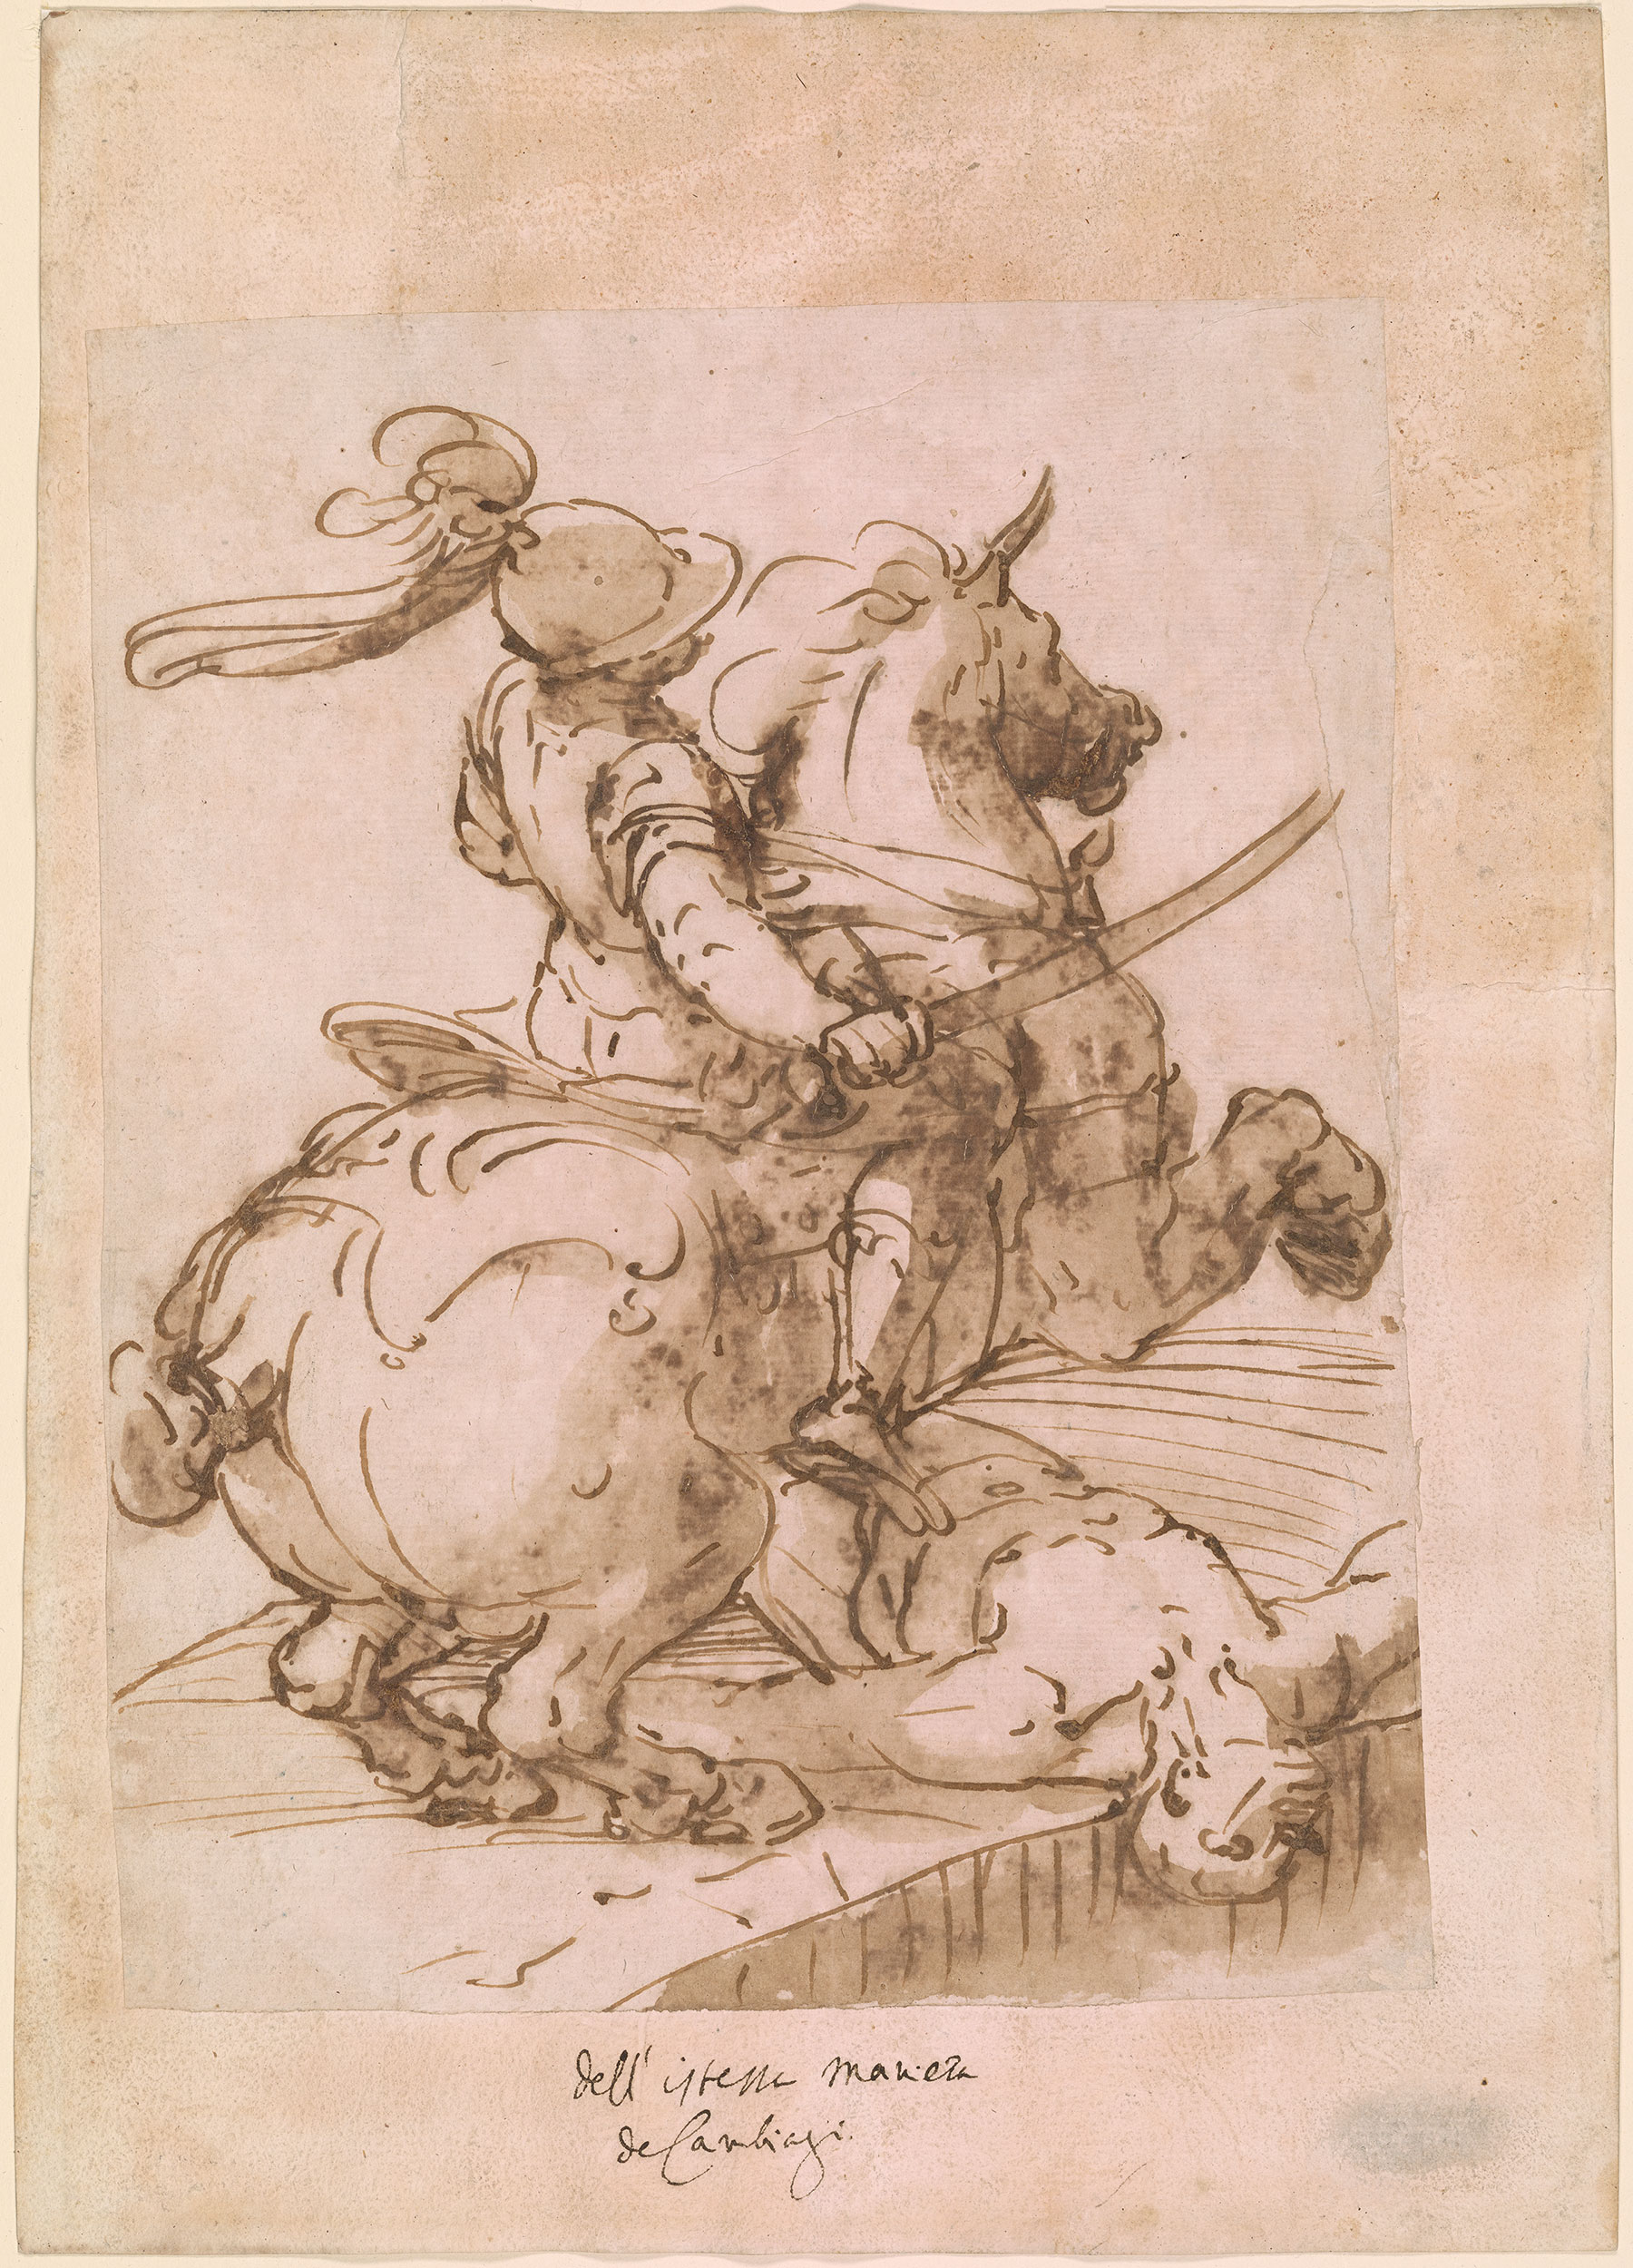 Dark Room Drawing: Soldier On A Rearing Horse With Supine Man